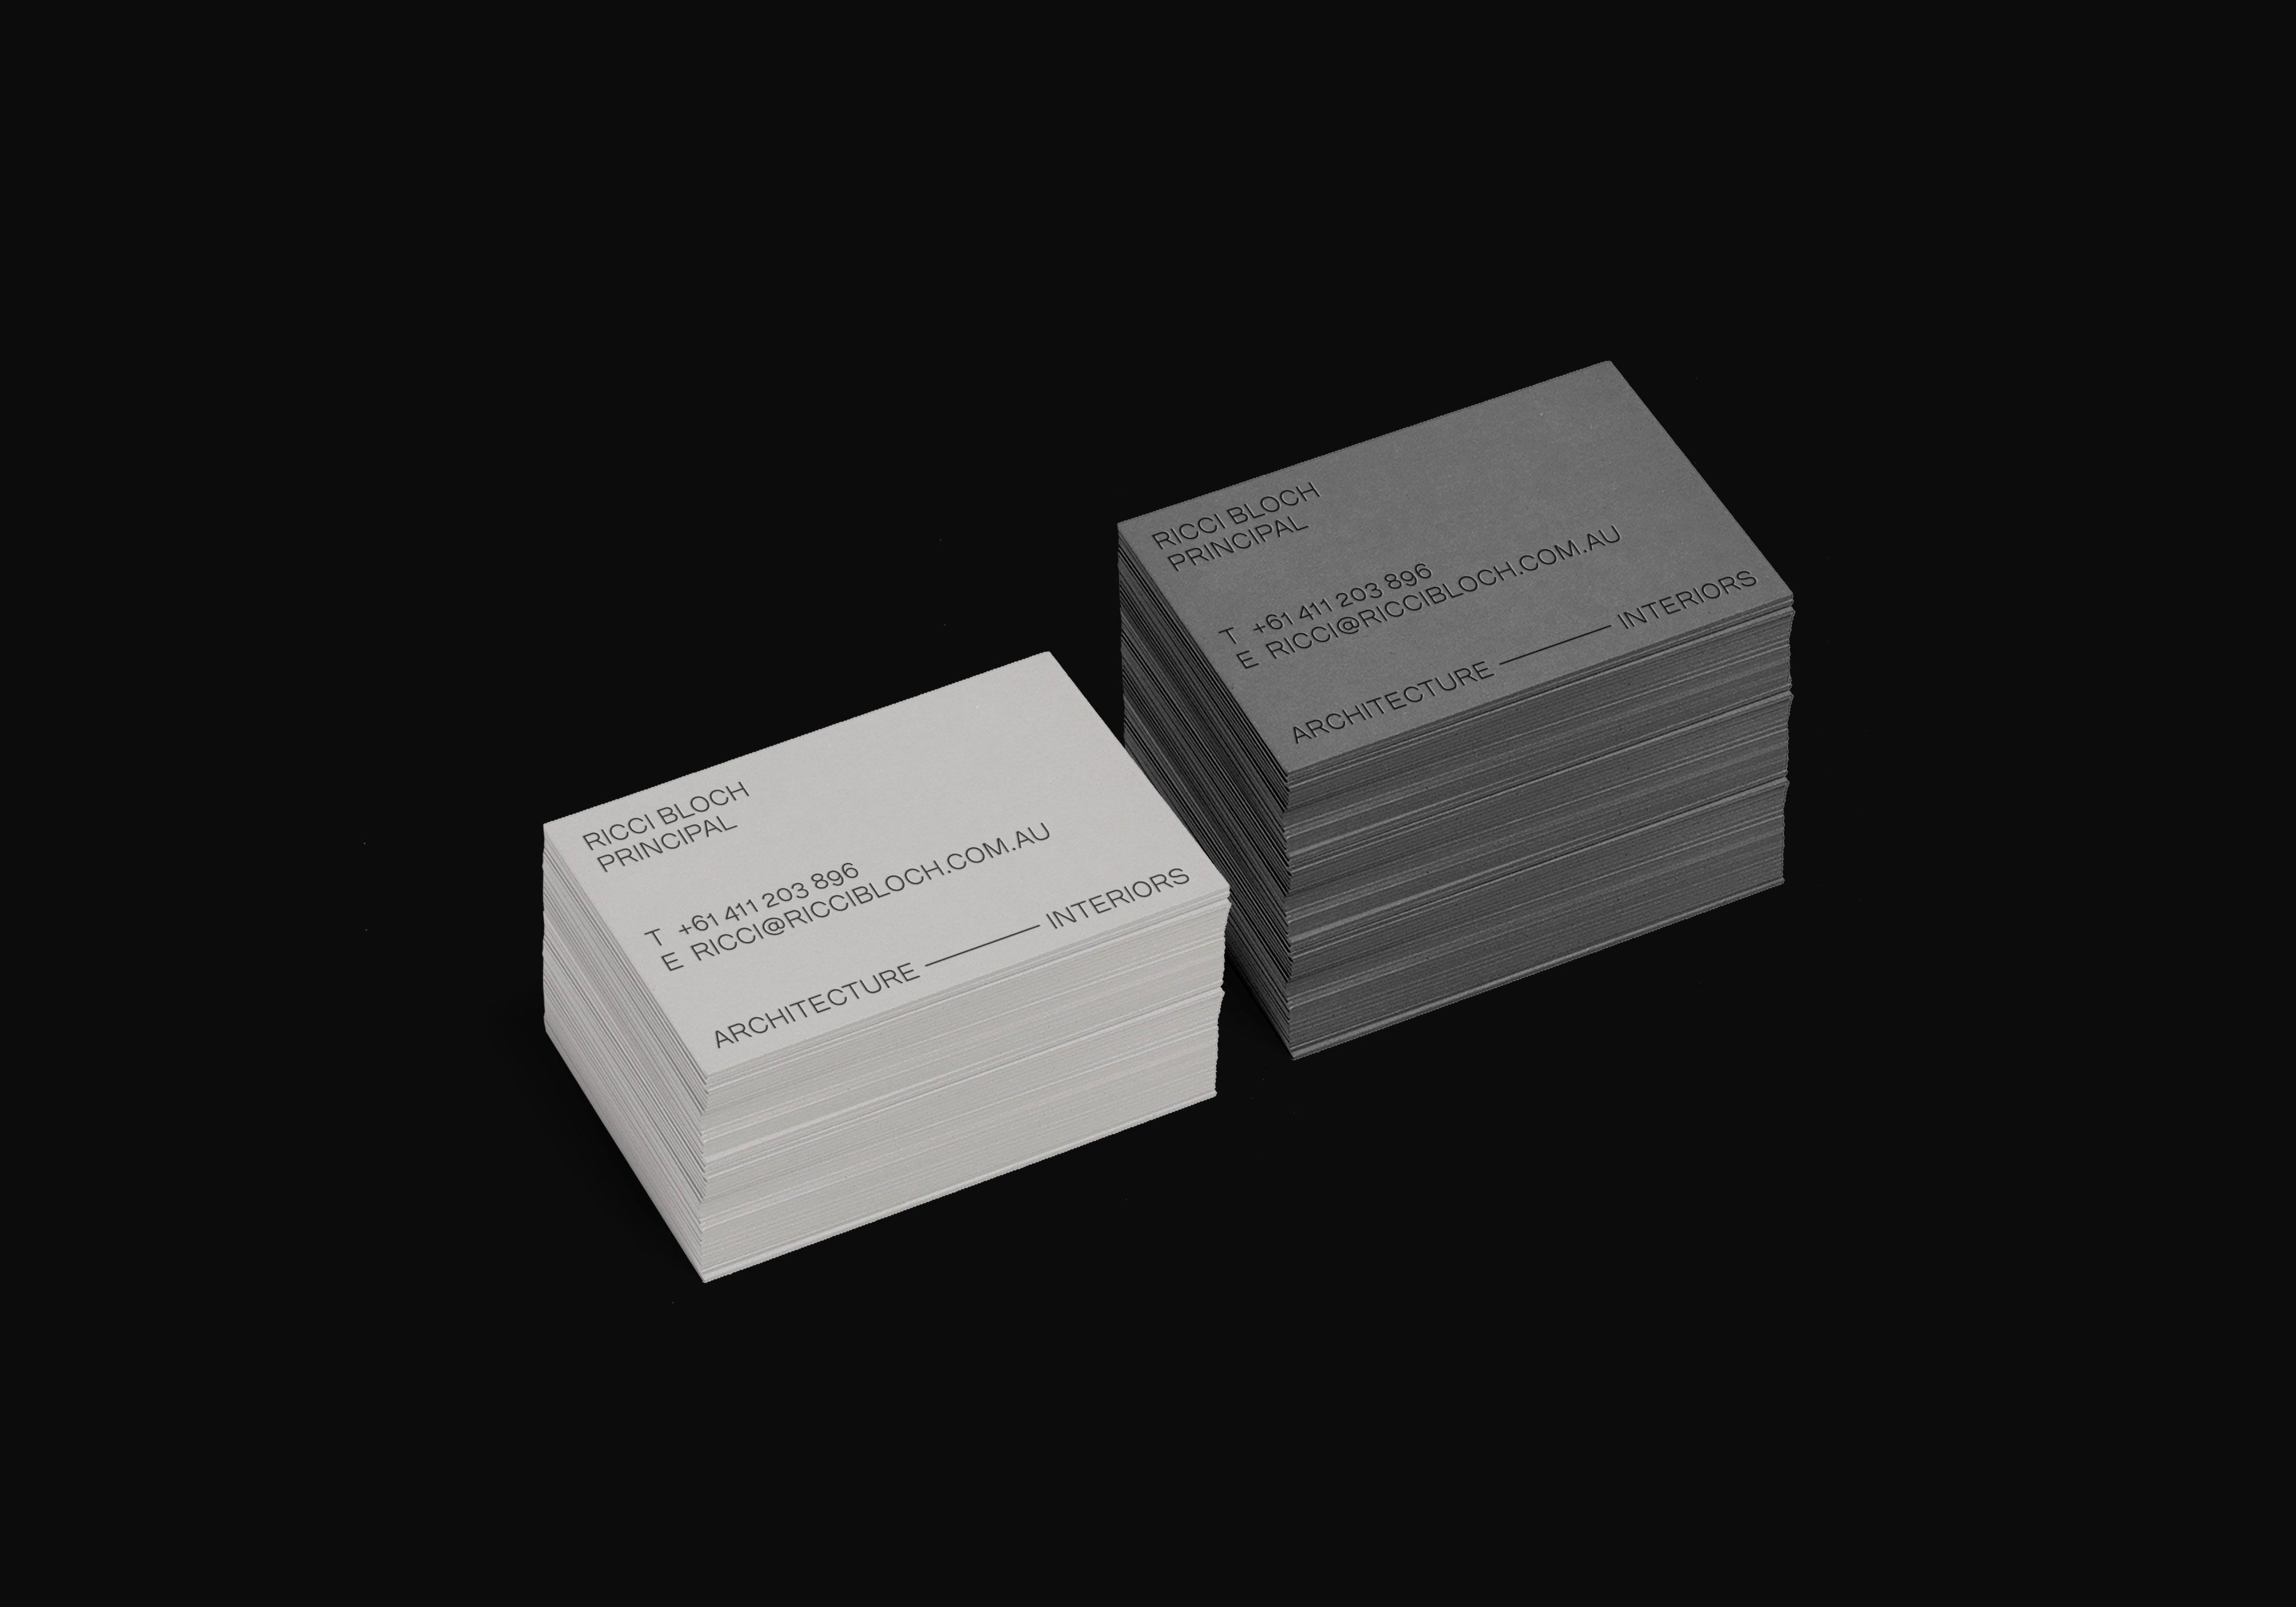 ricci bloch architects template logos and identity branding